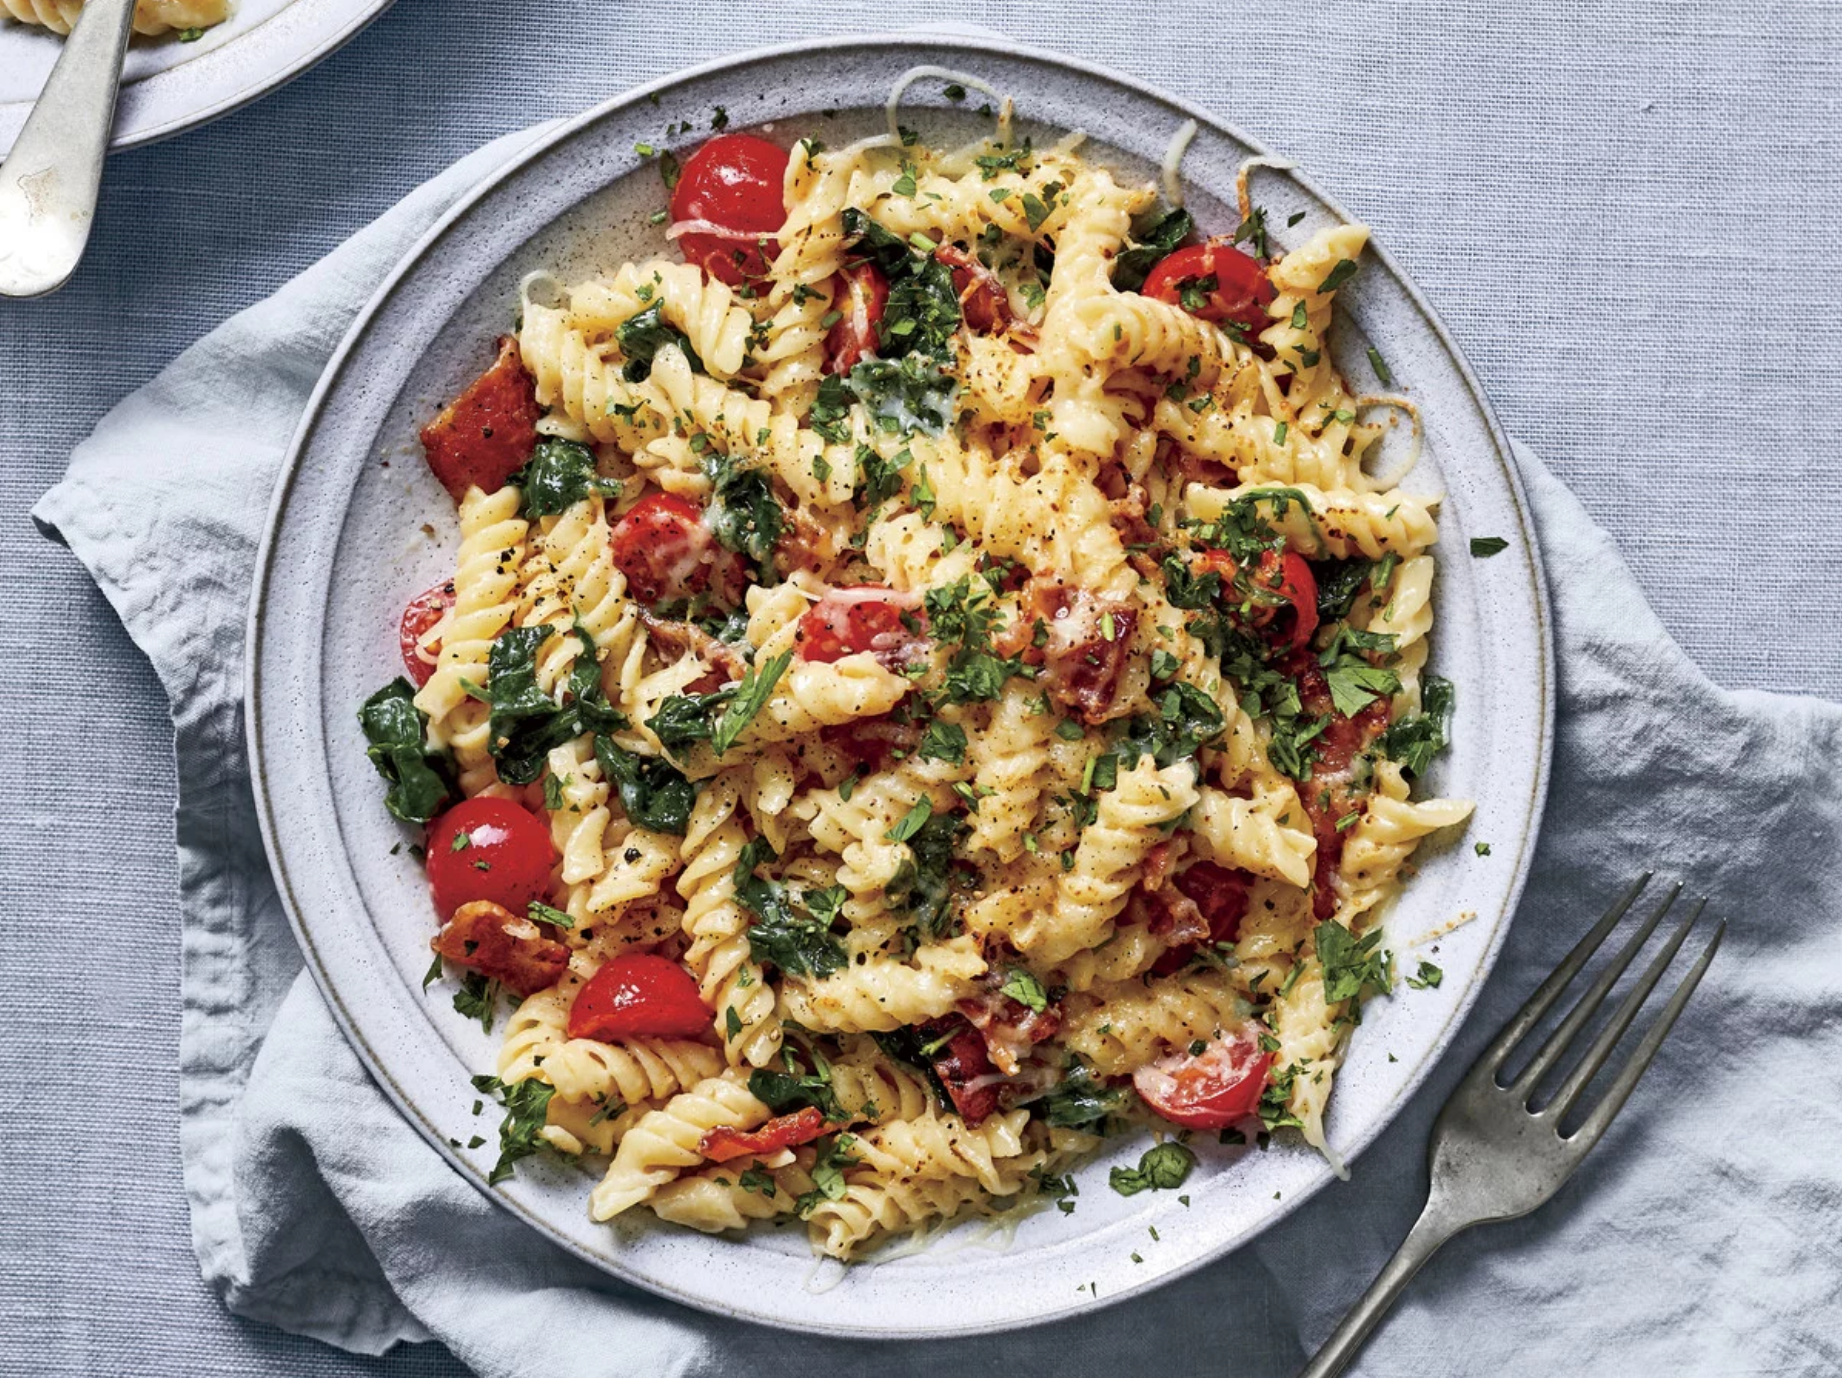 Fusilli Pasta with Spinach, Tomato, and Bacon